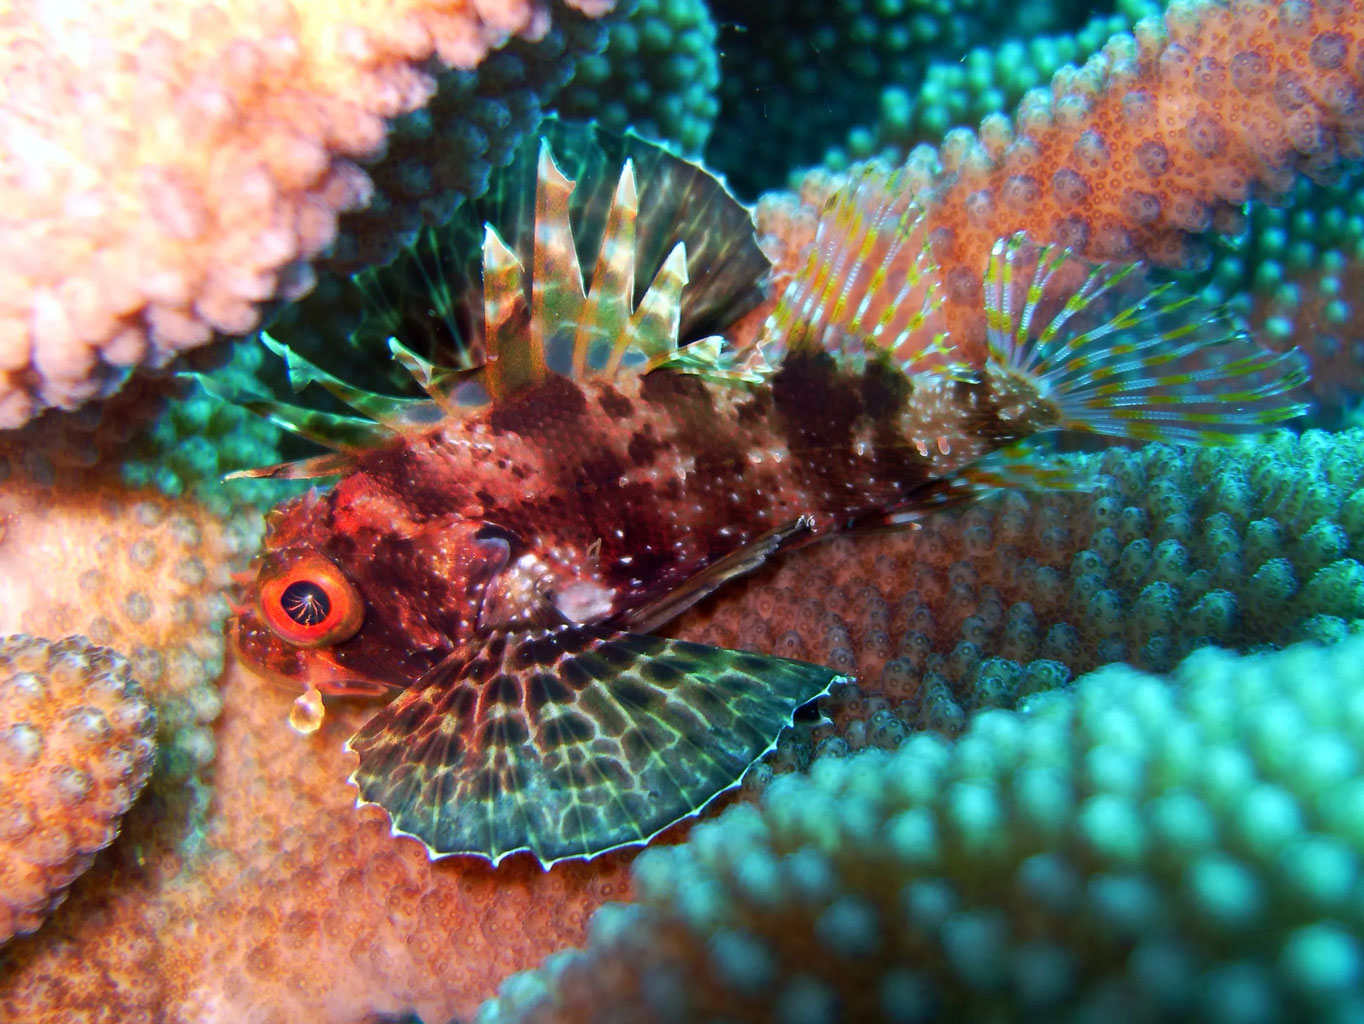 <p><strong>Fig. 4.22</strong><strong>.(</strong><strong>B)</strong> The dorsal fin of a lionfish has spines and poison for protection</p>